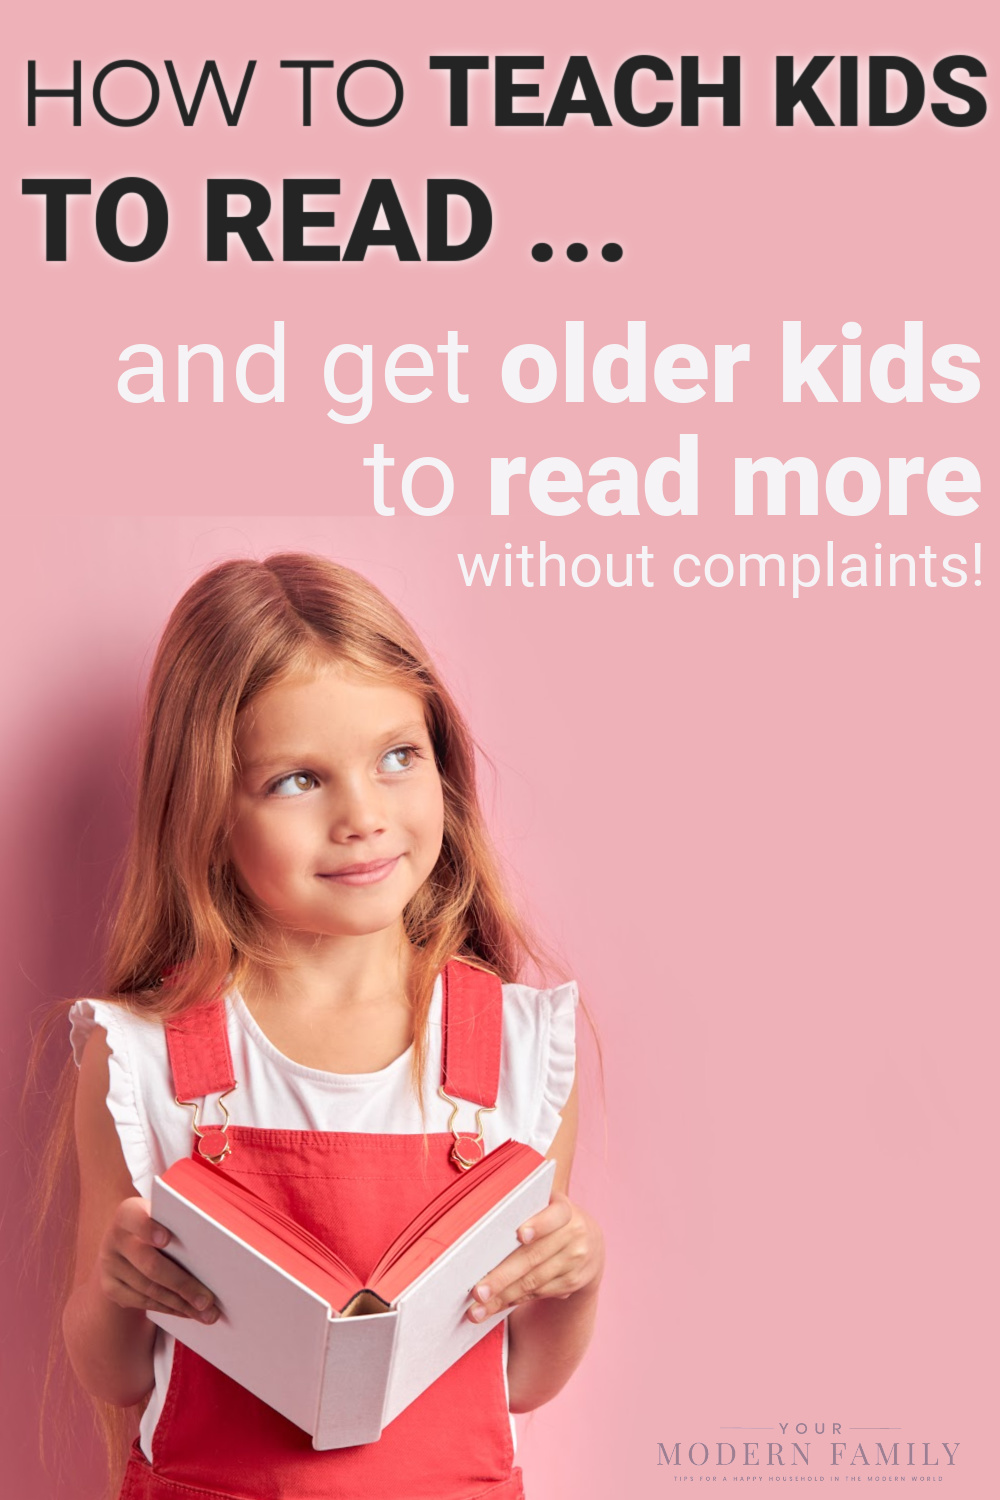 How to Teach Kids to Read (sneak in extra reading for kids!)